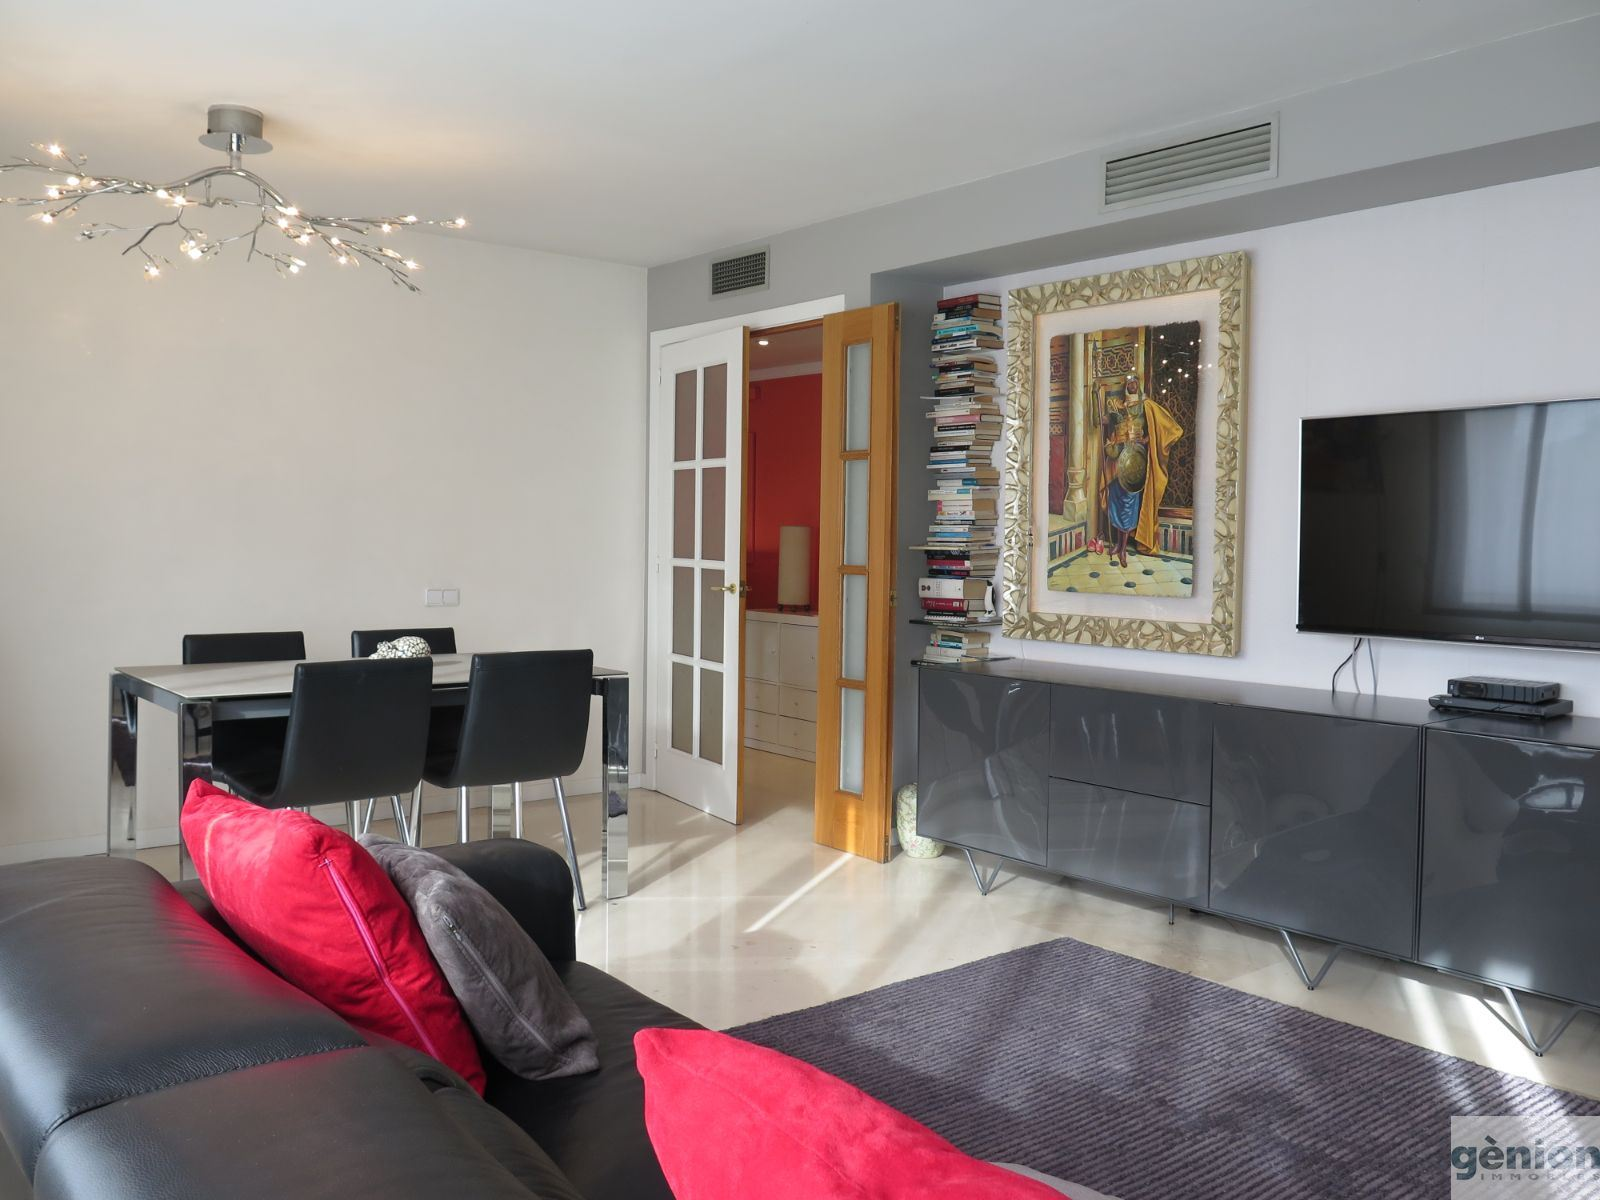 FOUR-BEDROOM APARTMENT WITH SOUTH ORIENTATION IN THE HEART OF GIRONA'S EIXAMPLE DISTRICT